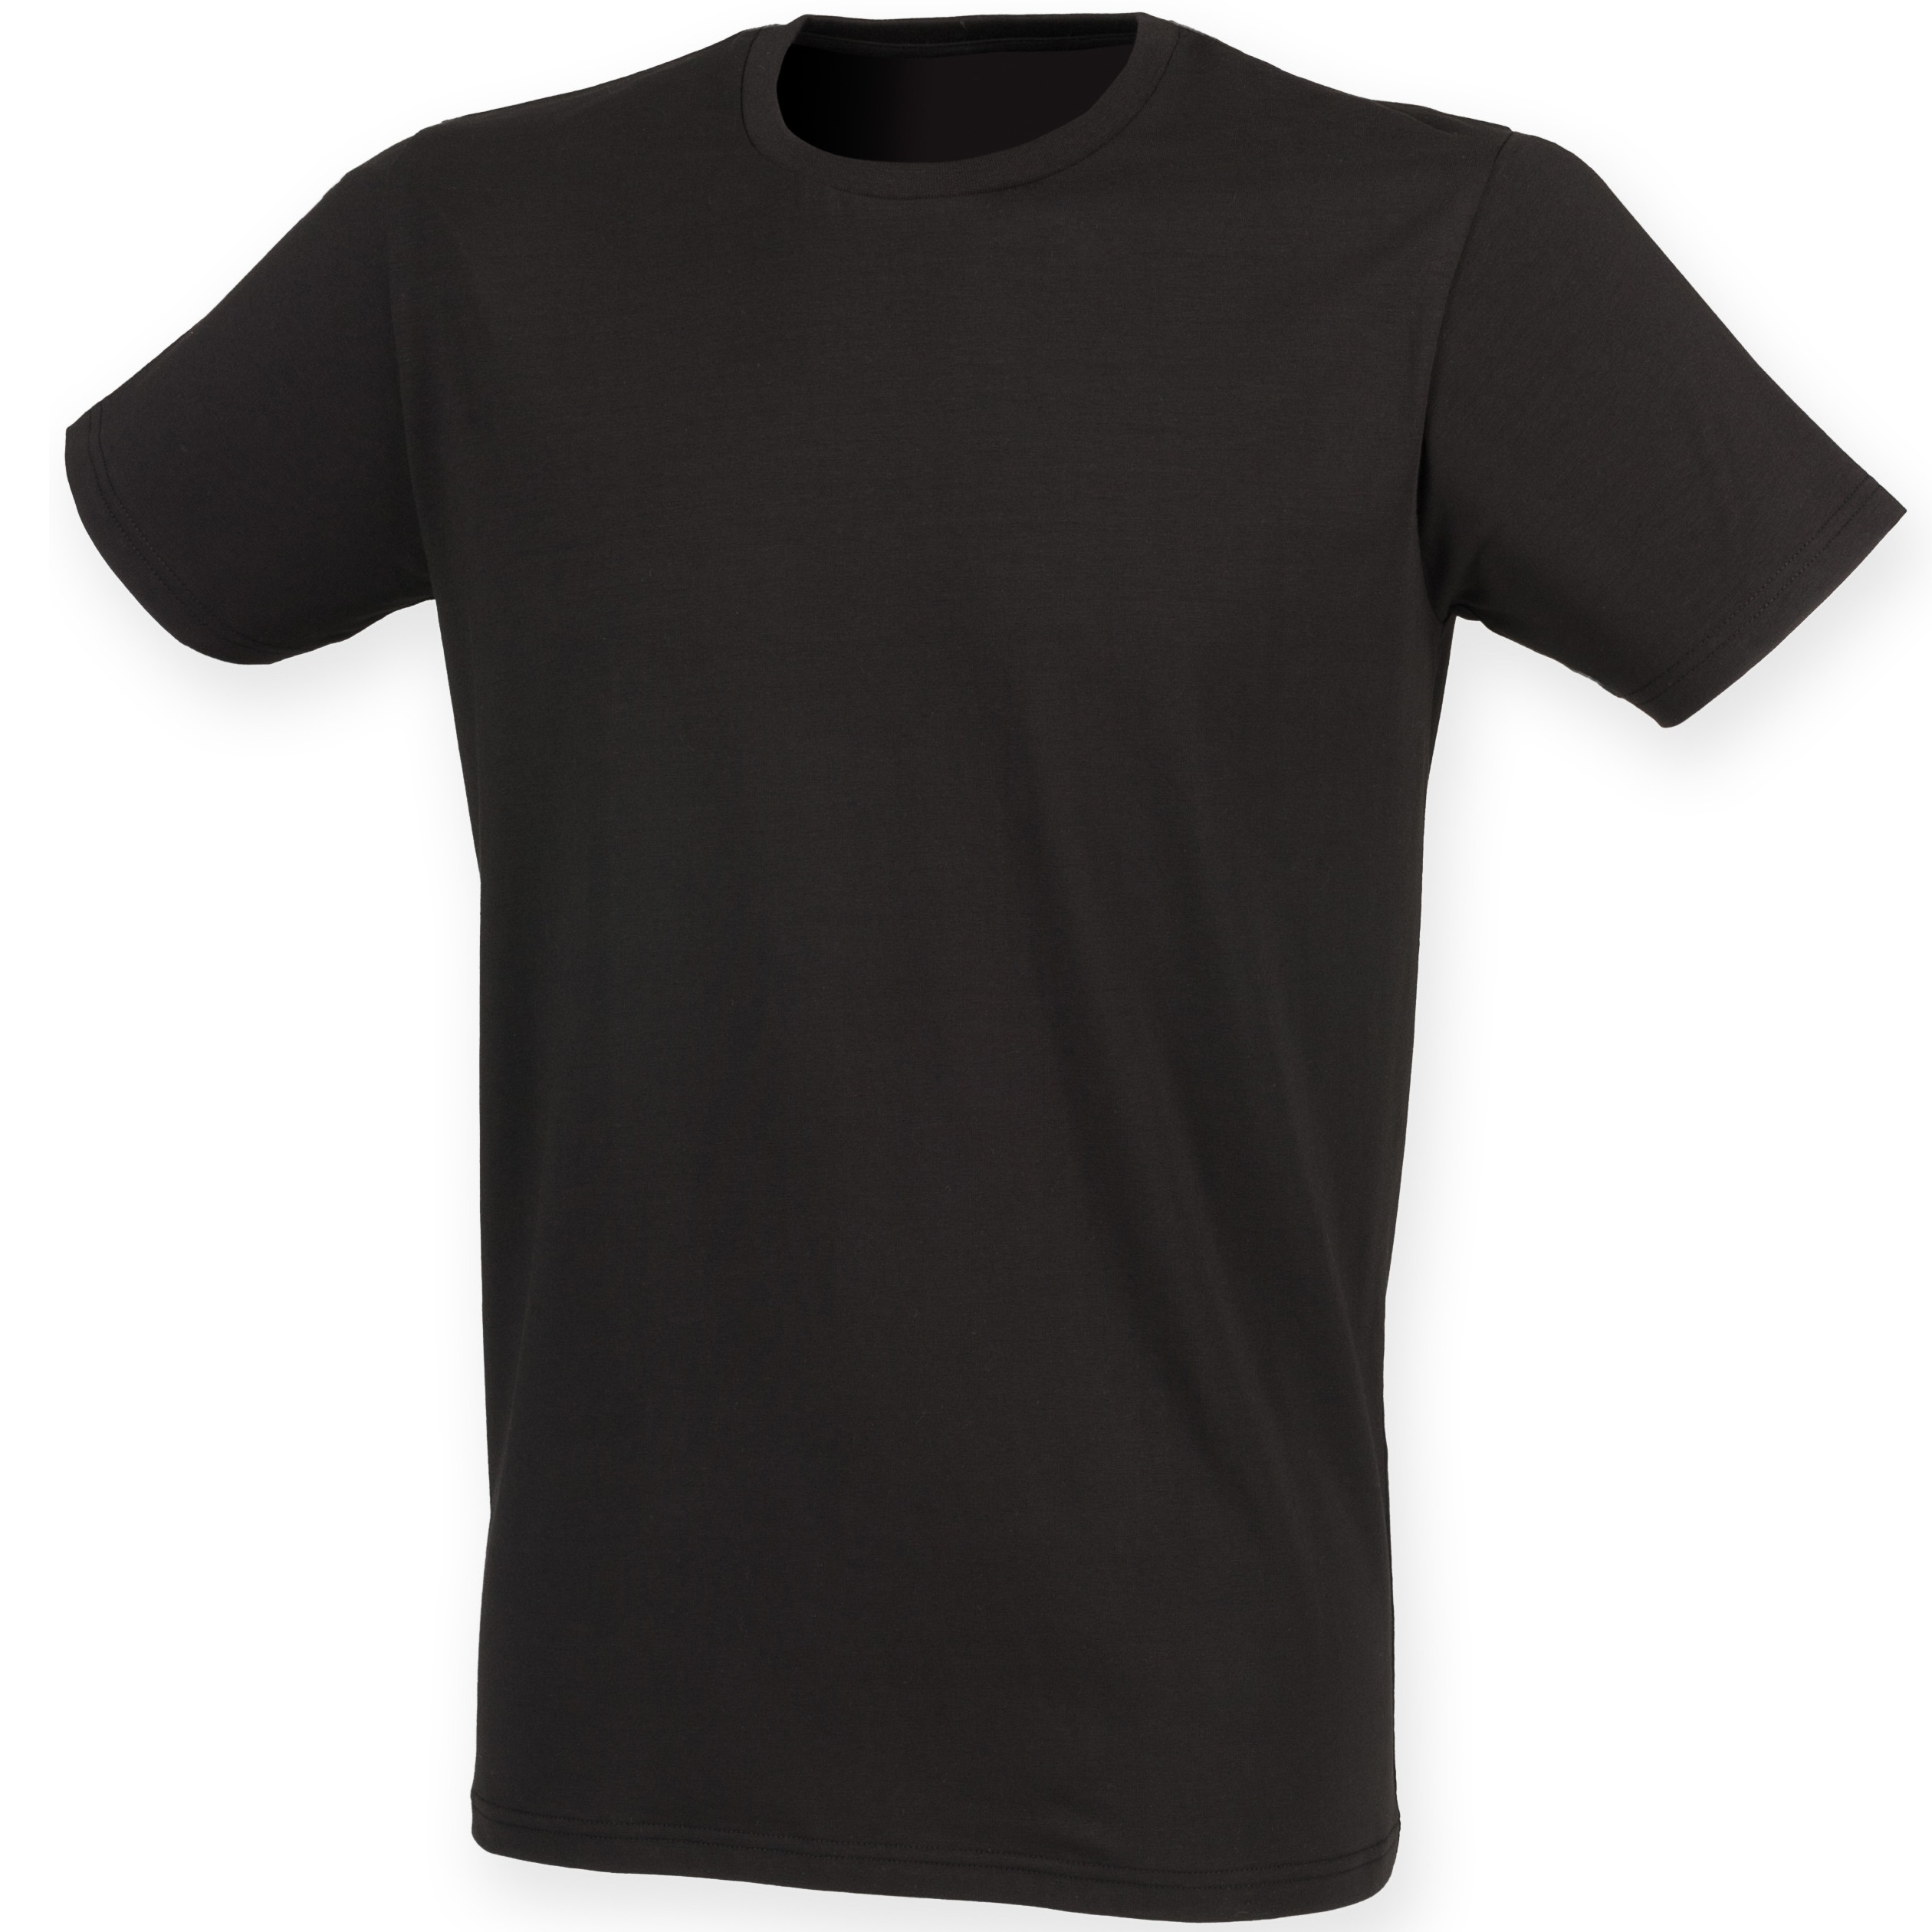 Cover your body with amazing Stretch t-shirts from Zazzle. Search for your new favorite shirt from thousands of great designs!